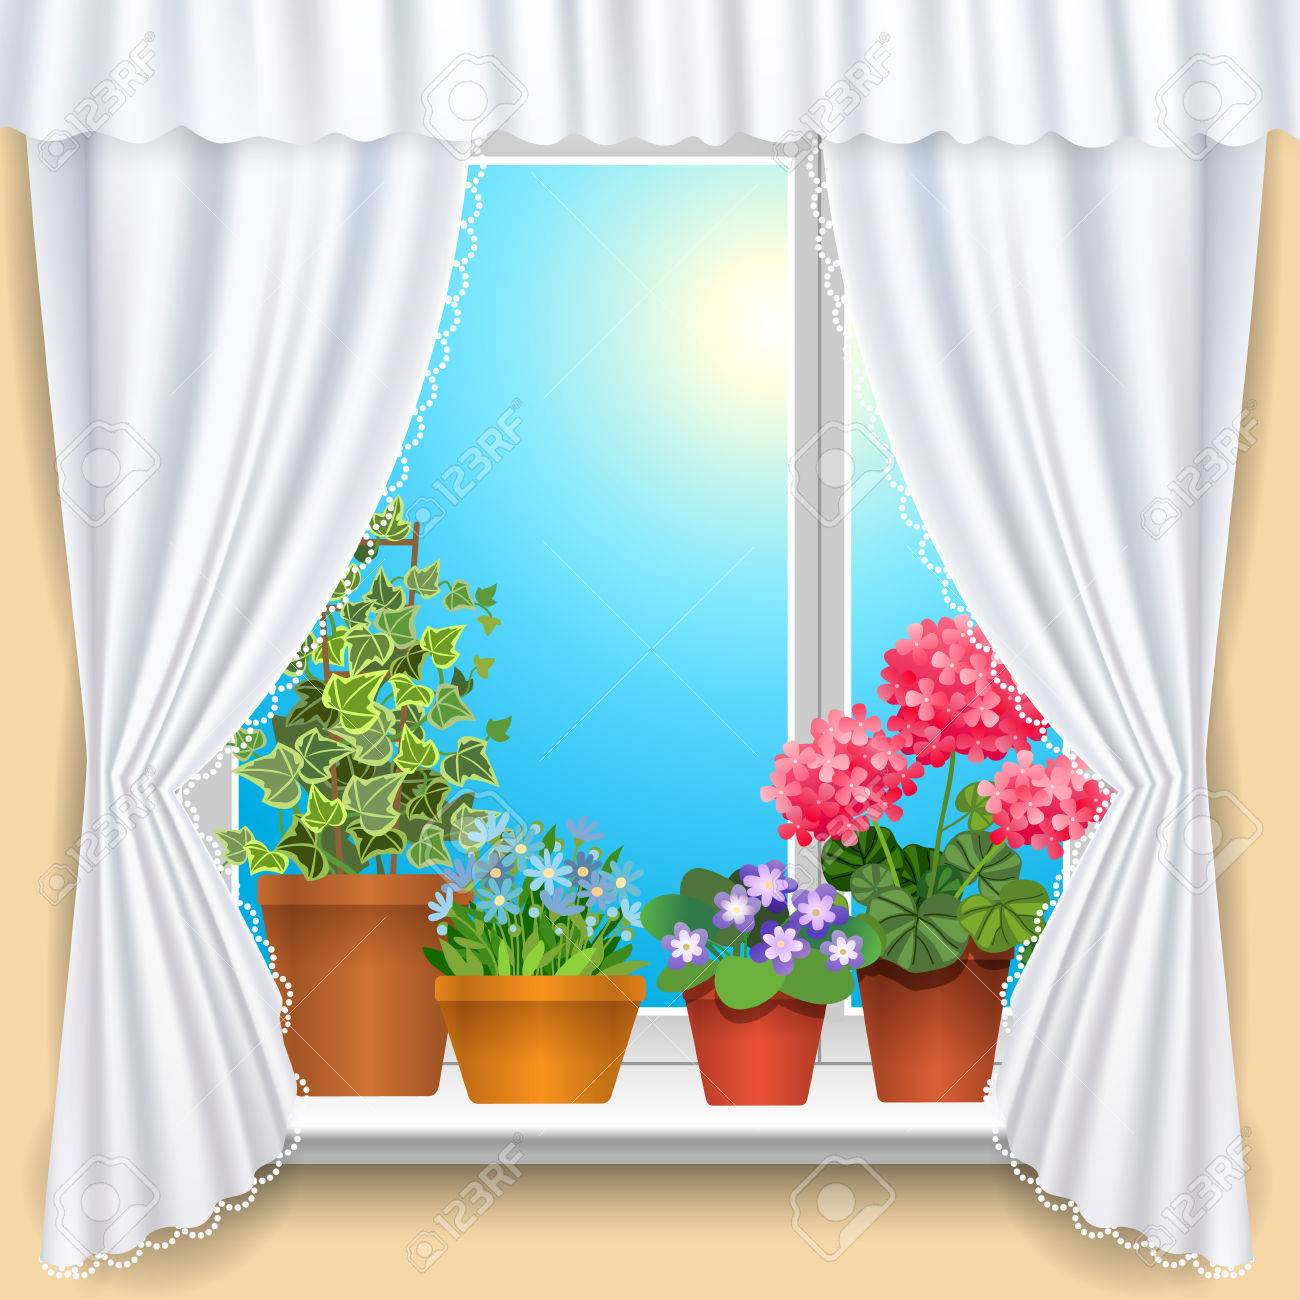 Window with white curtains and flowers template background for vector window with white curtains and flowers template background for design mightylinksfo